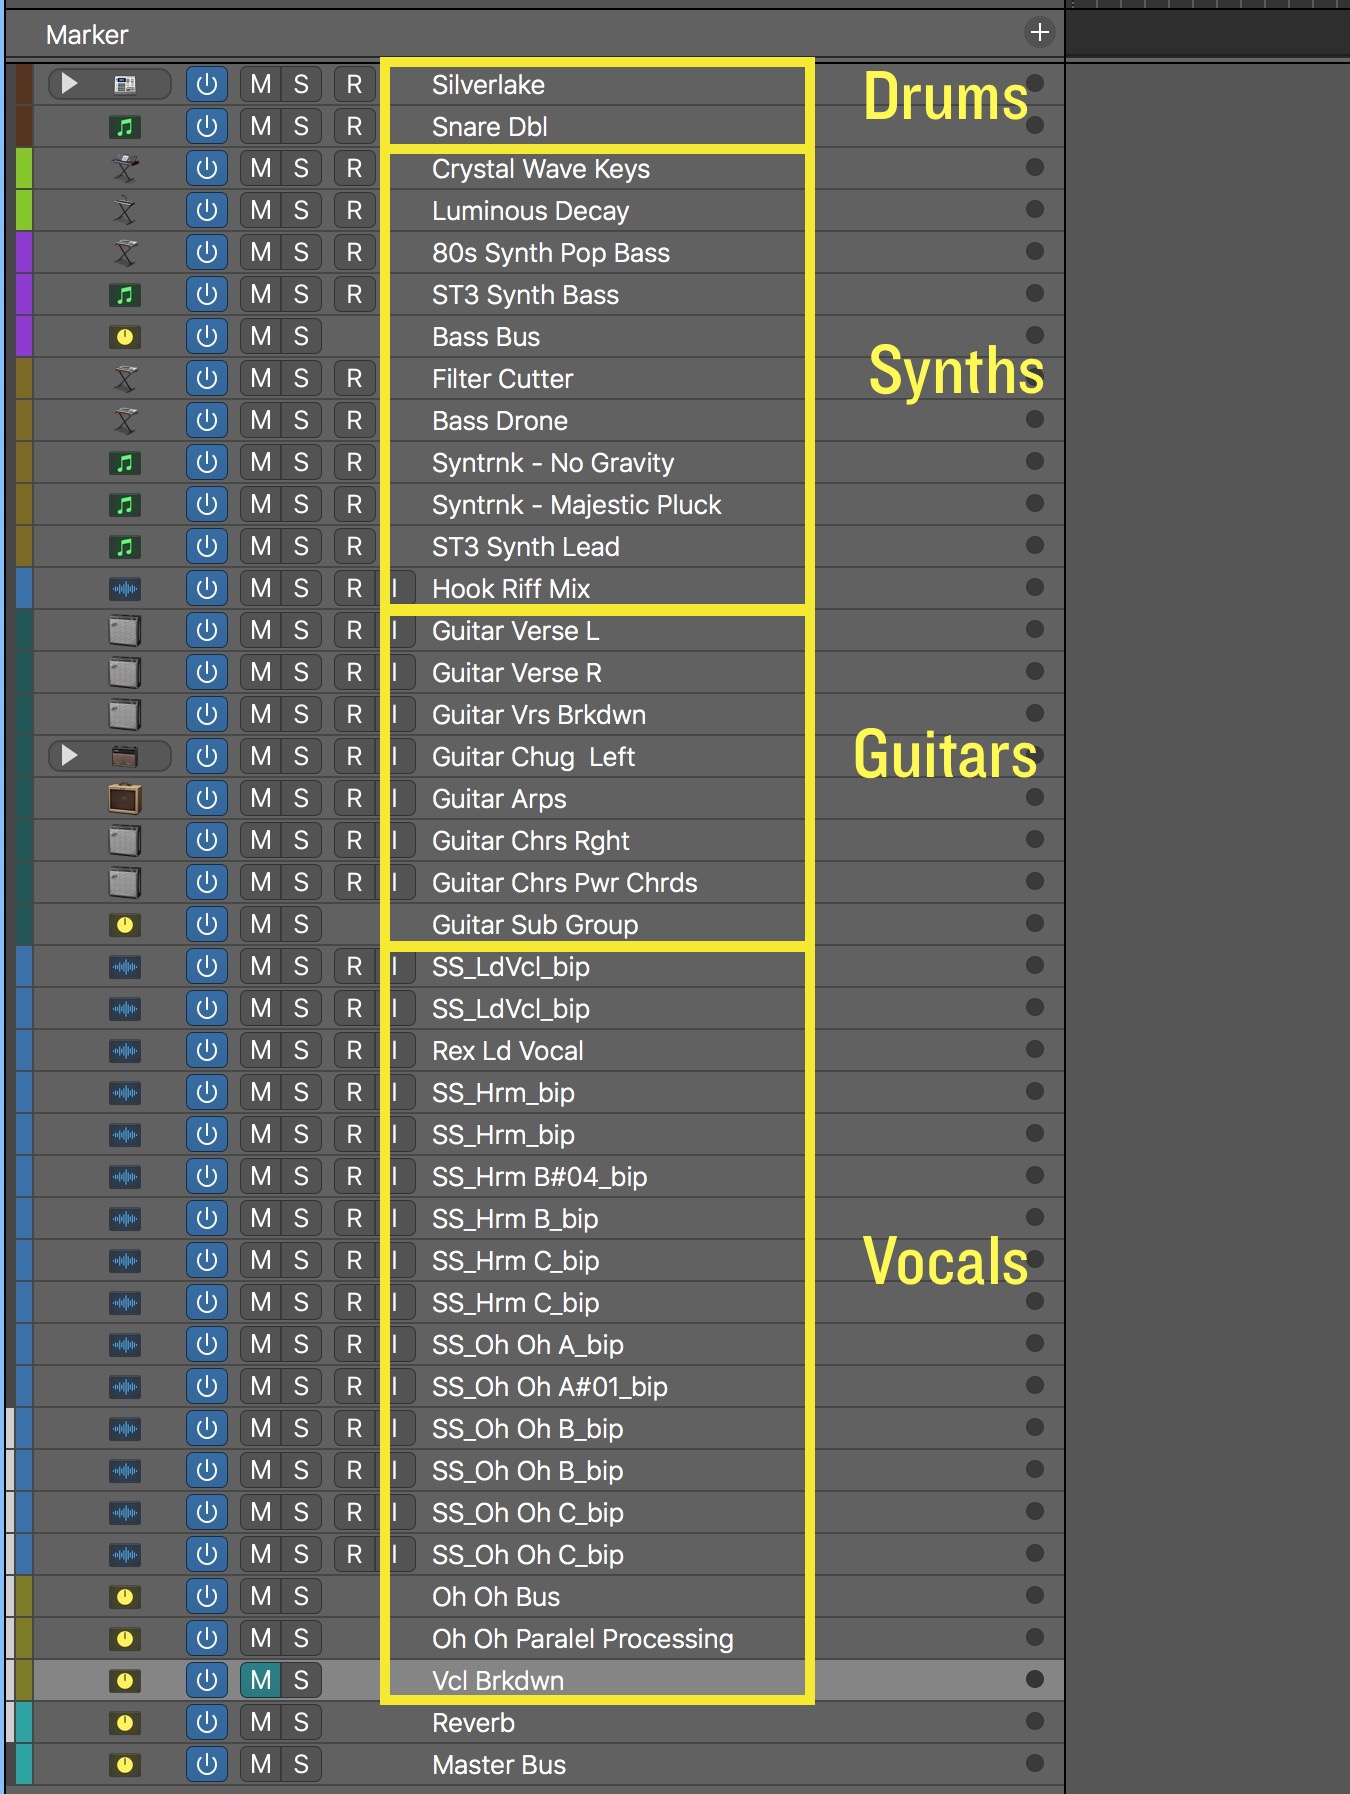 Drum, synth, guitar, and vocal tracks are organized together.